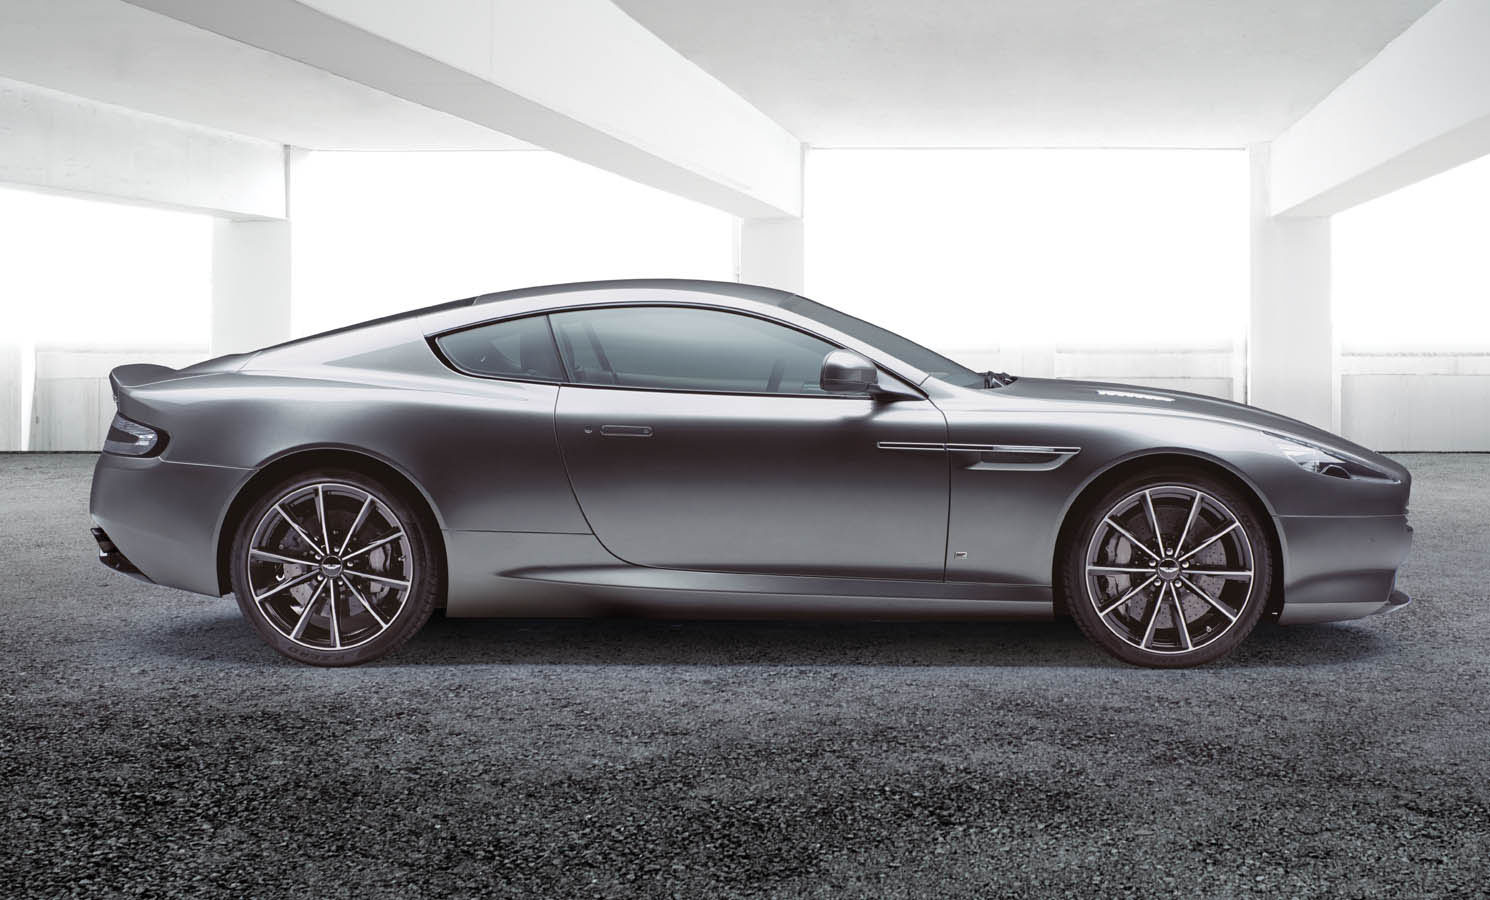 Aston Martin db9 side